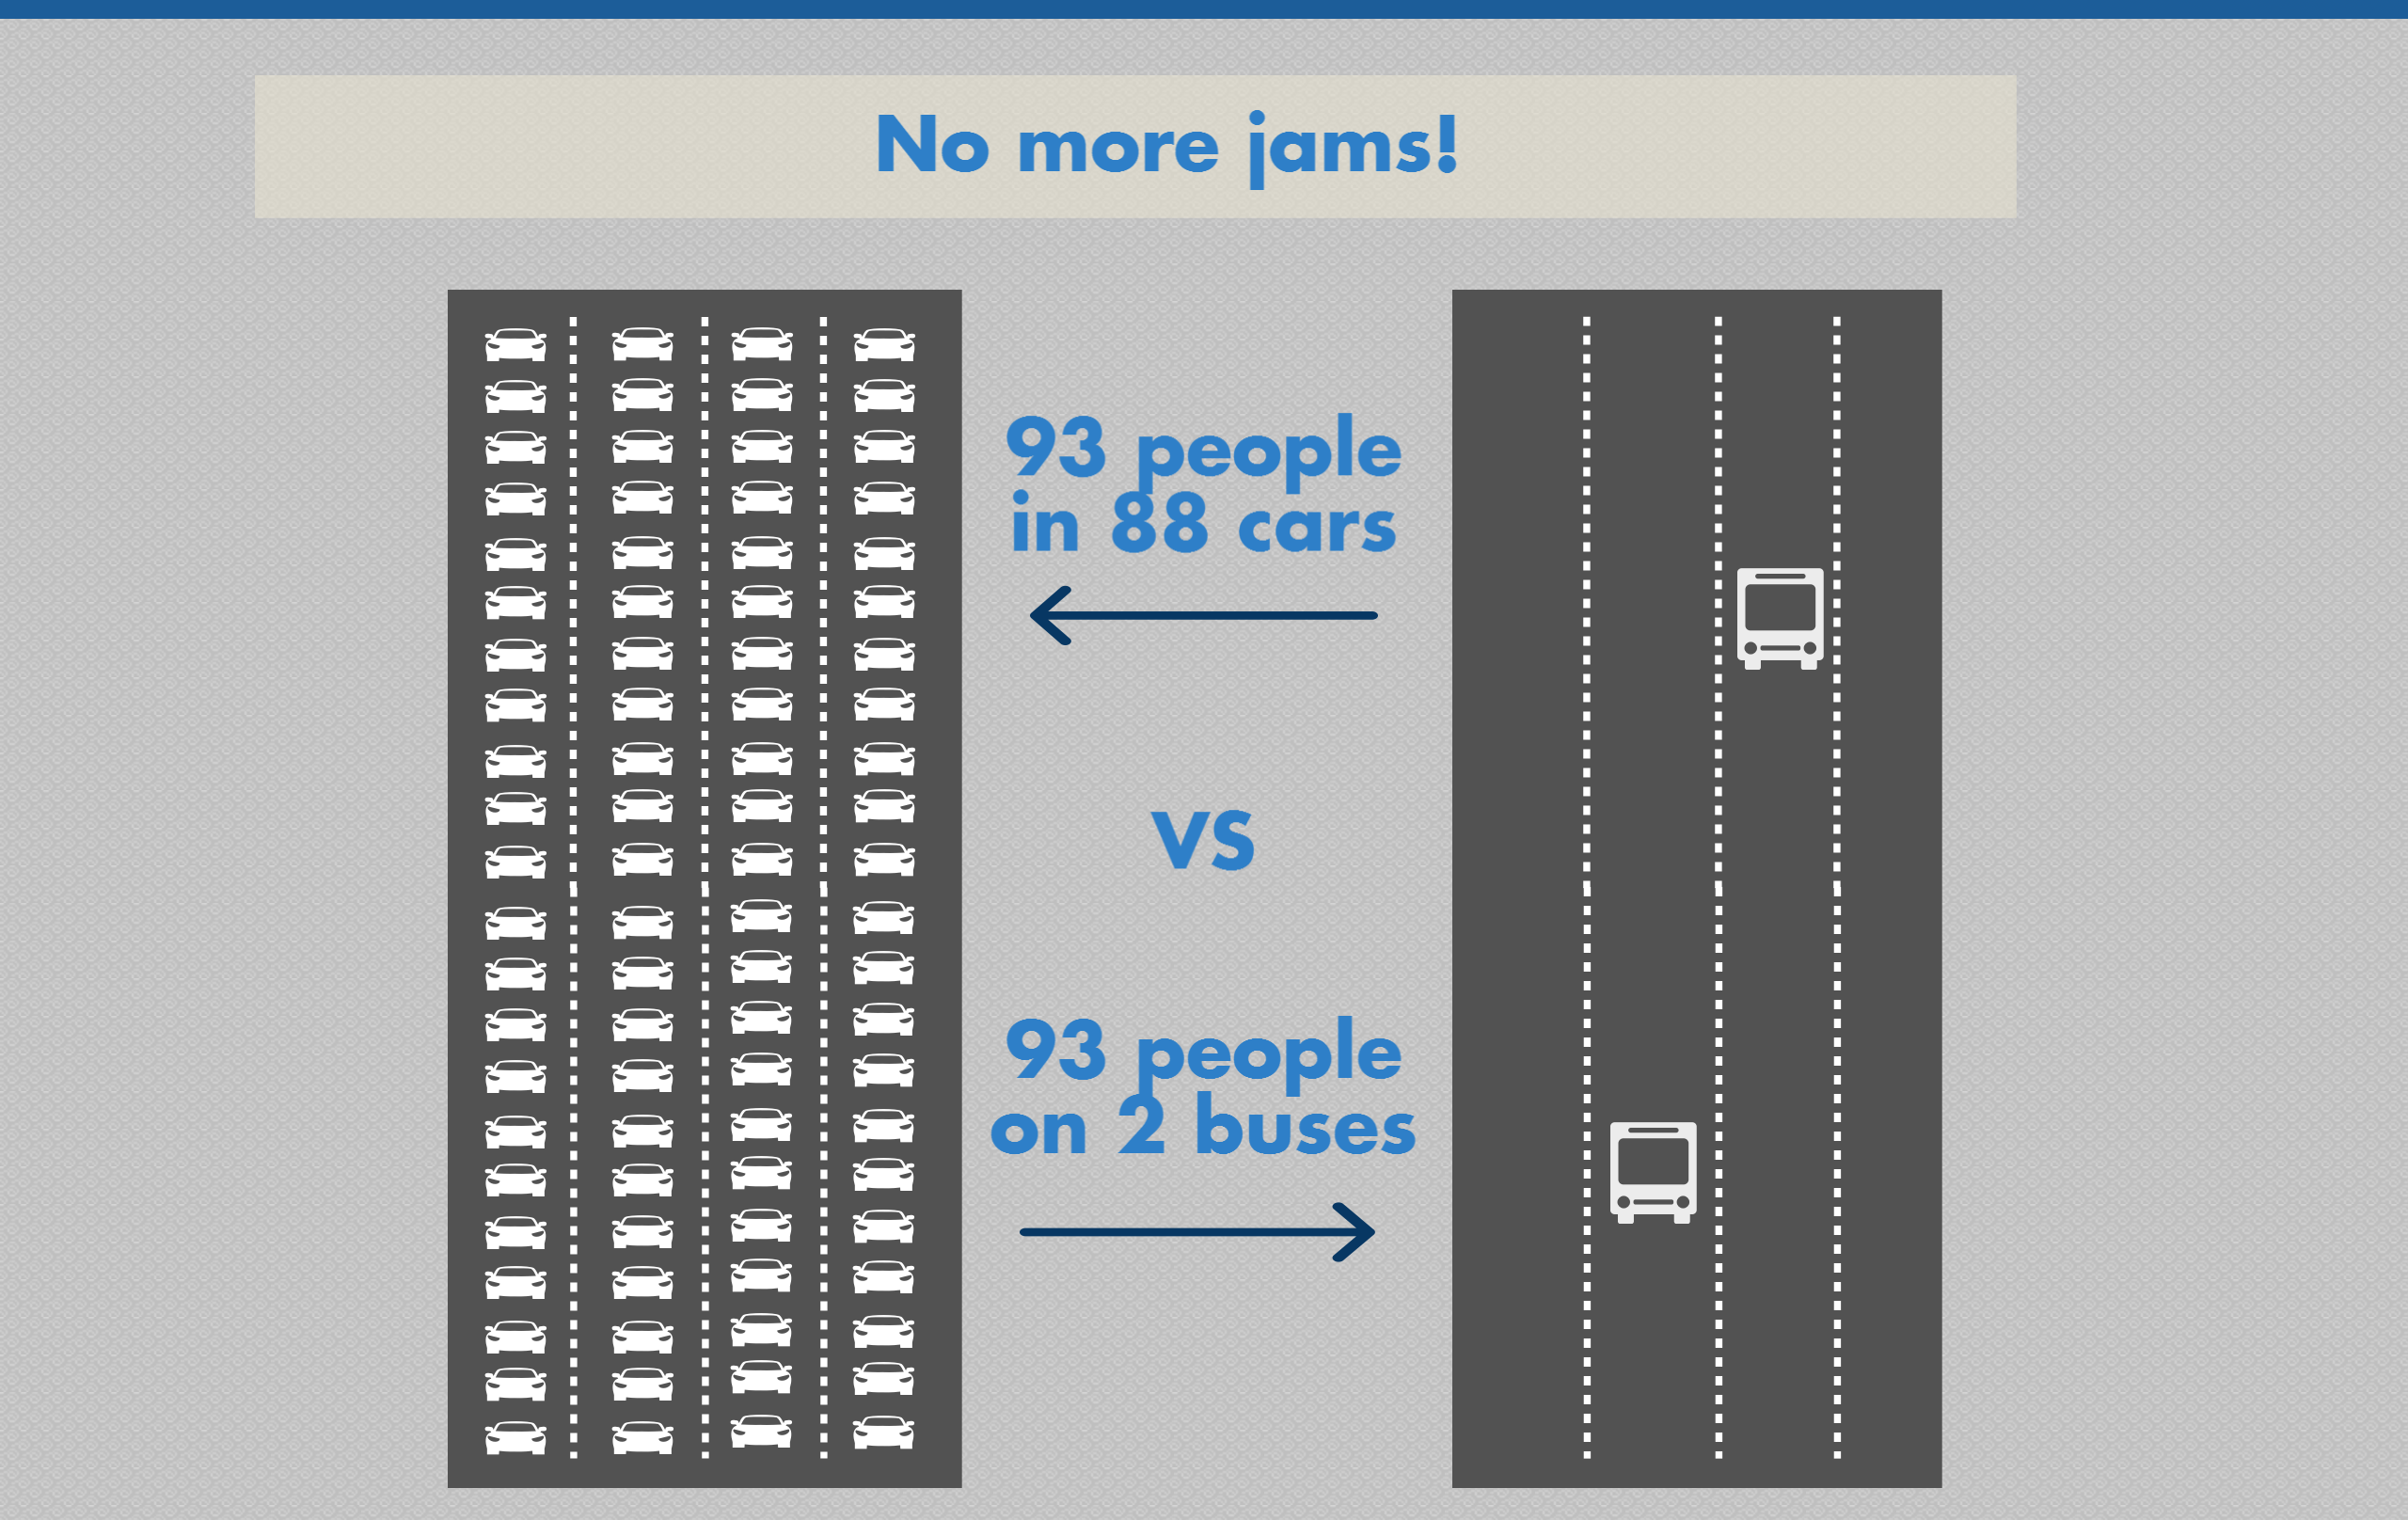 There are 272 cars in one mile of traffic and only 6 buses